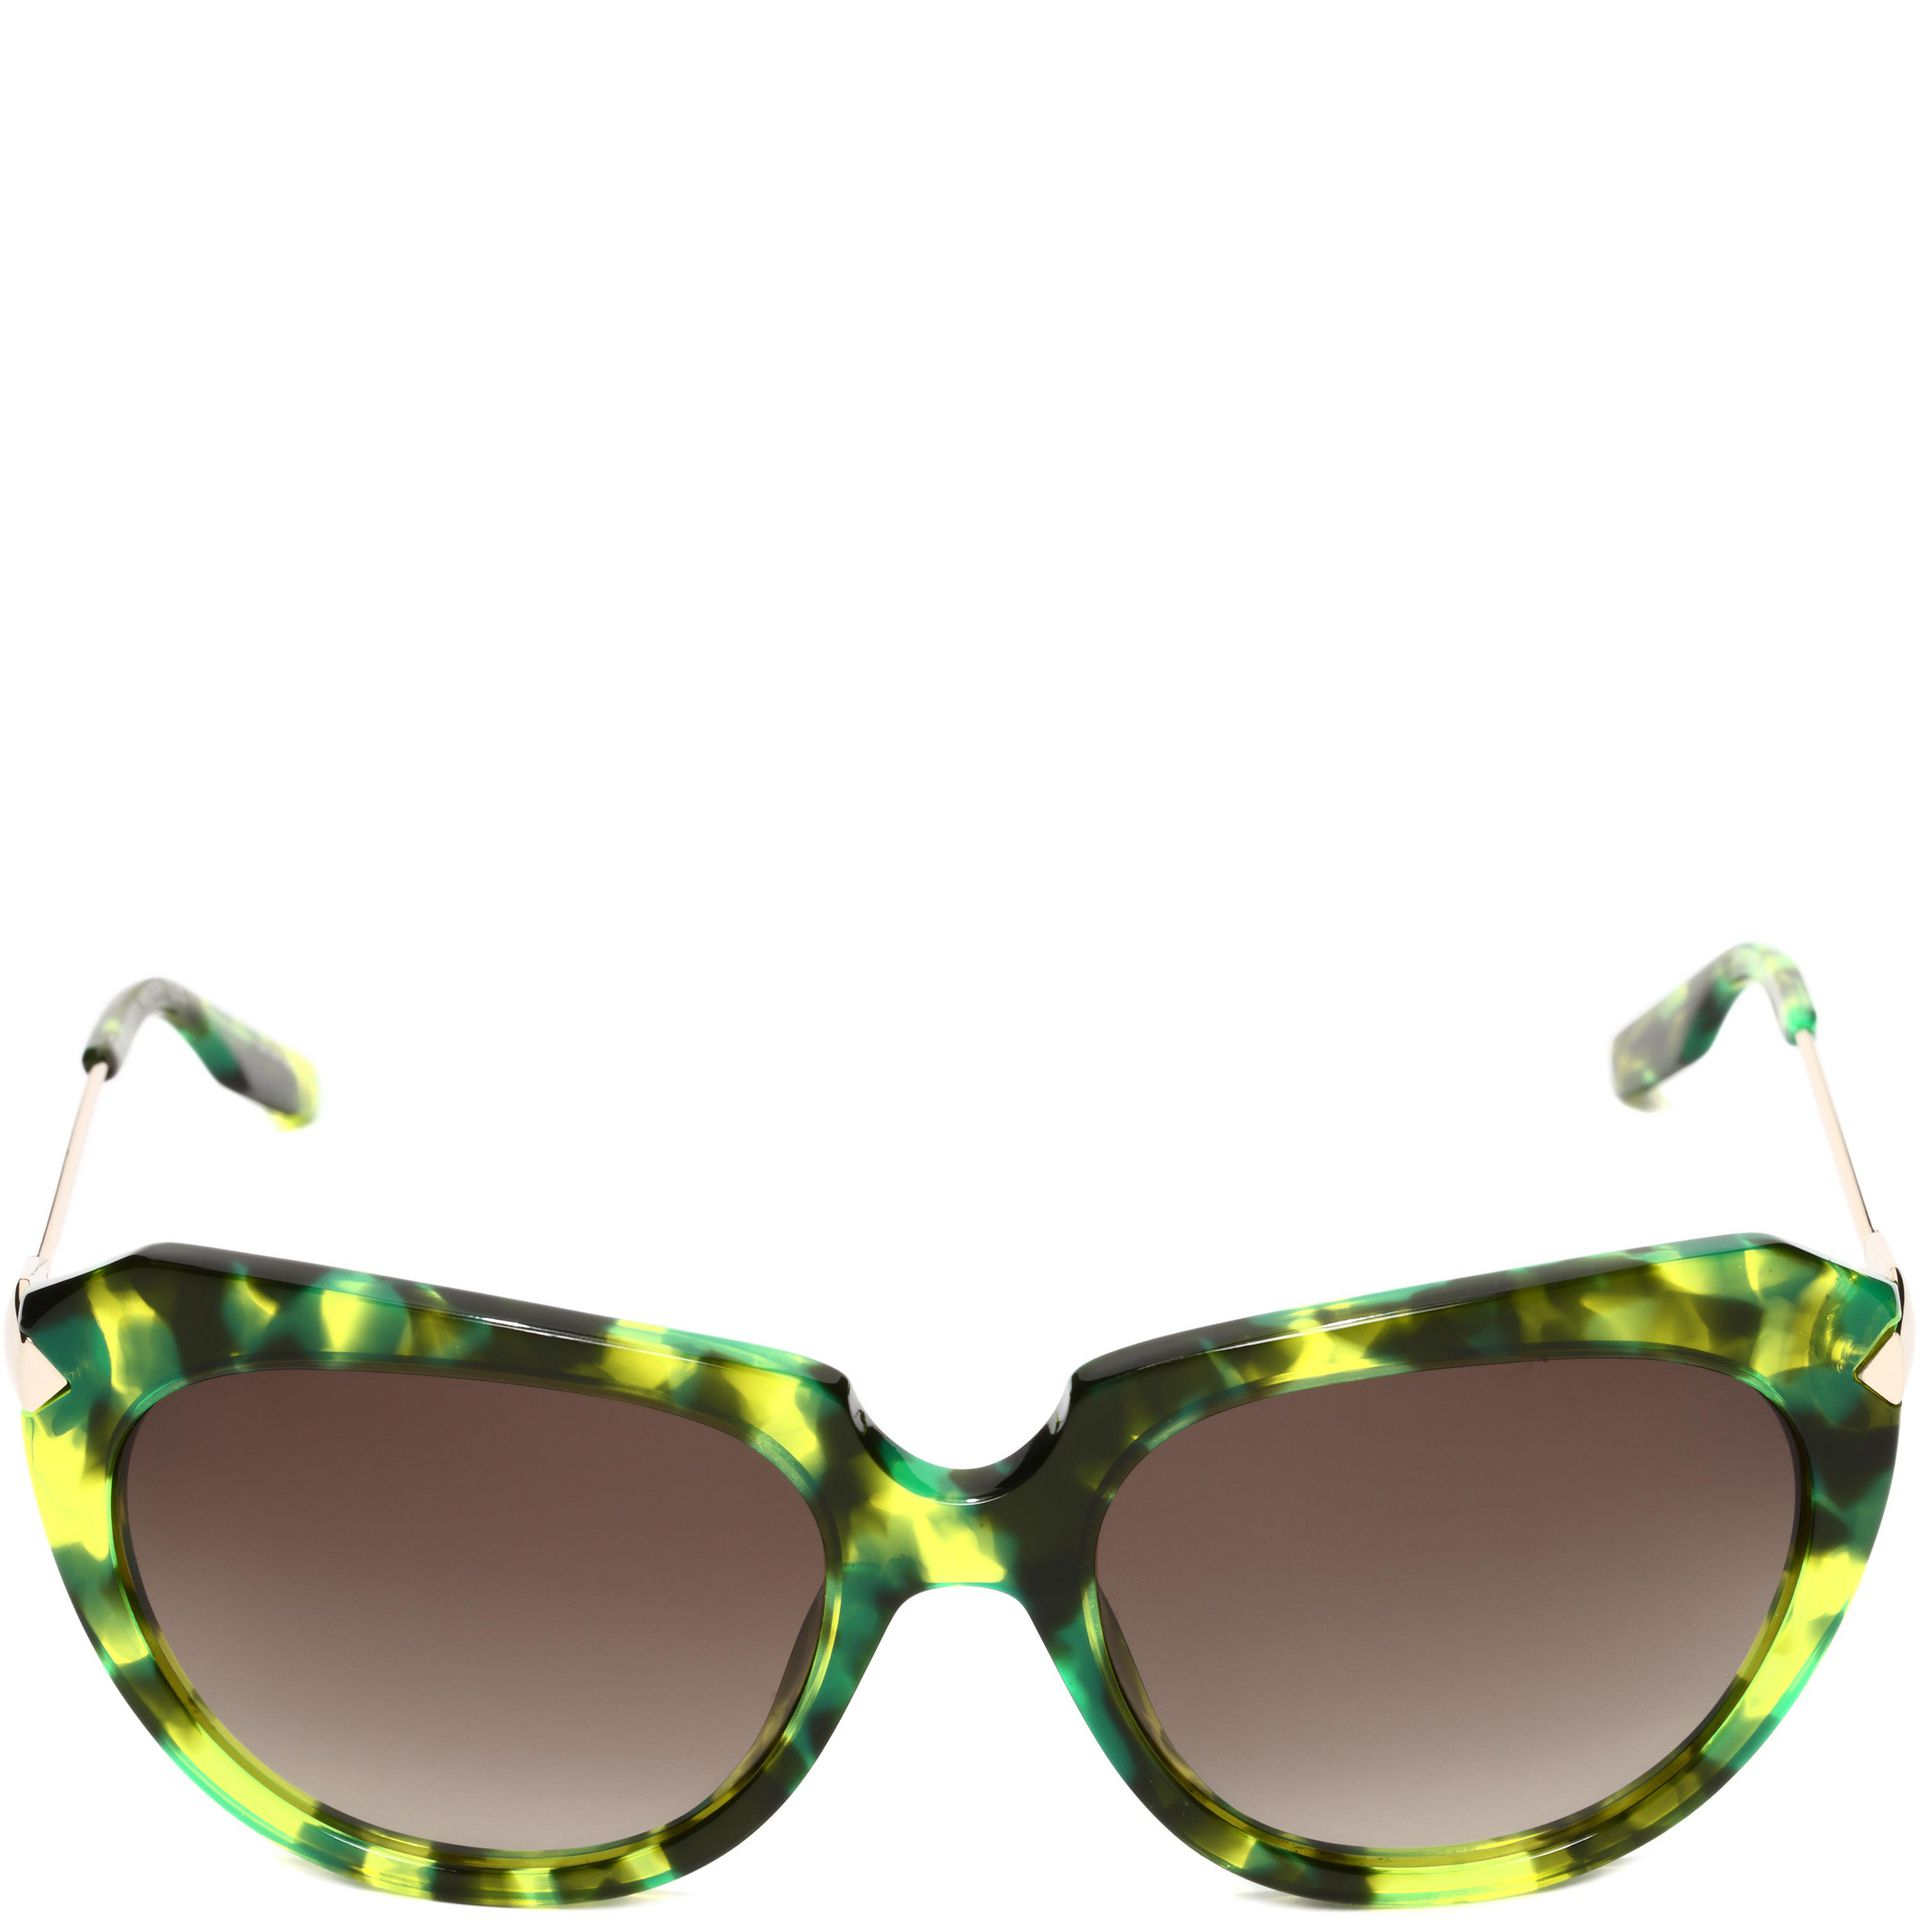 85bc8dbef1c6 McQ Stealth Havana Sunglasses in Green - Lyst